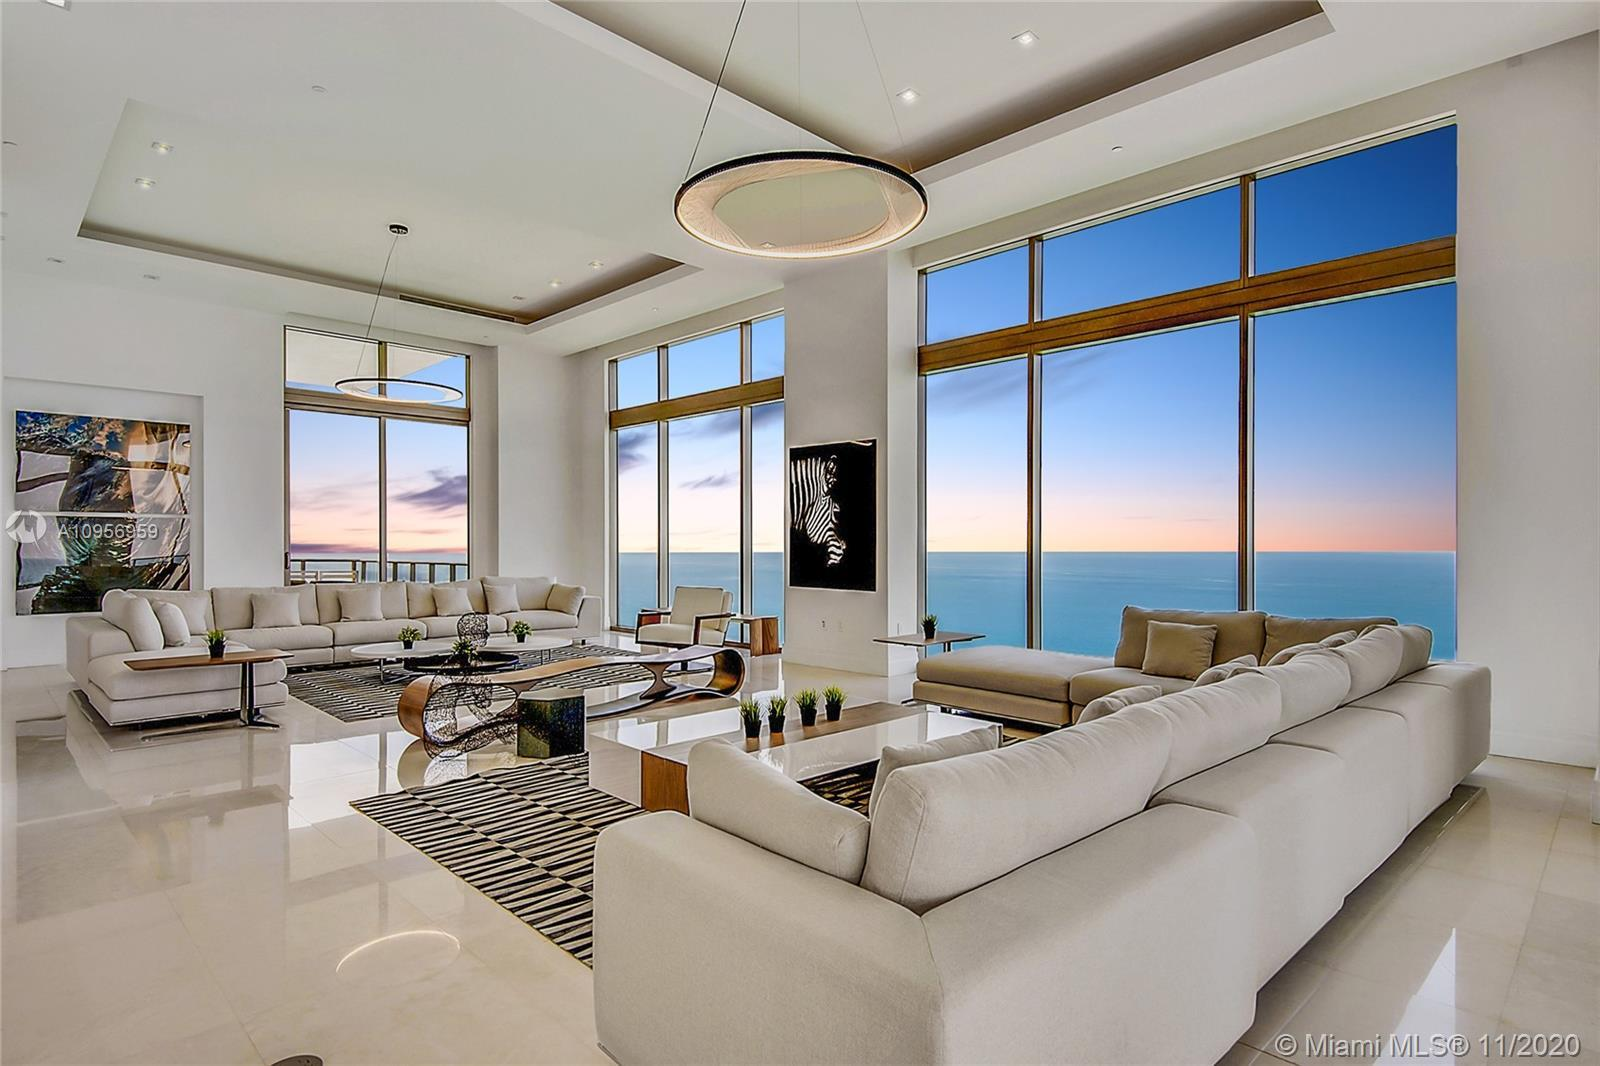 This mesmerizing Penthouse represents the pinnacle of upscale oceanfront living. Finished with the f